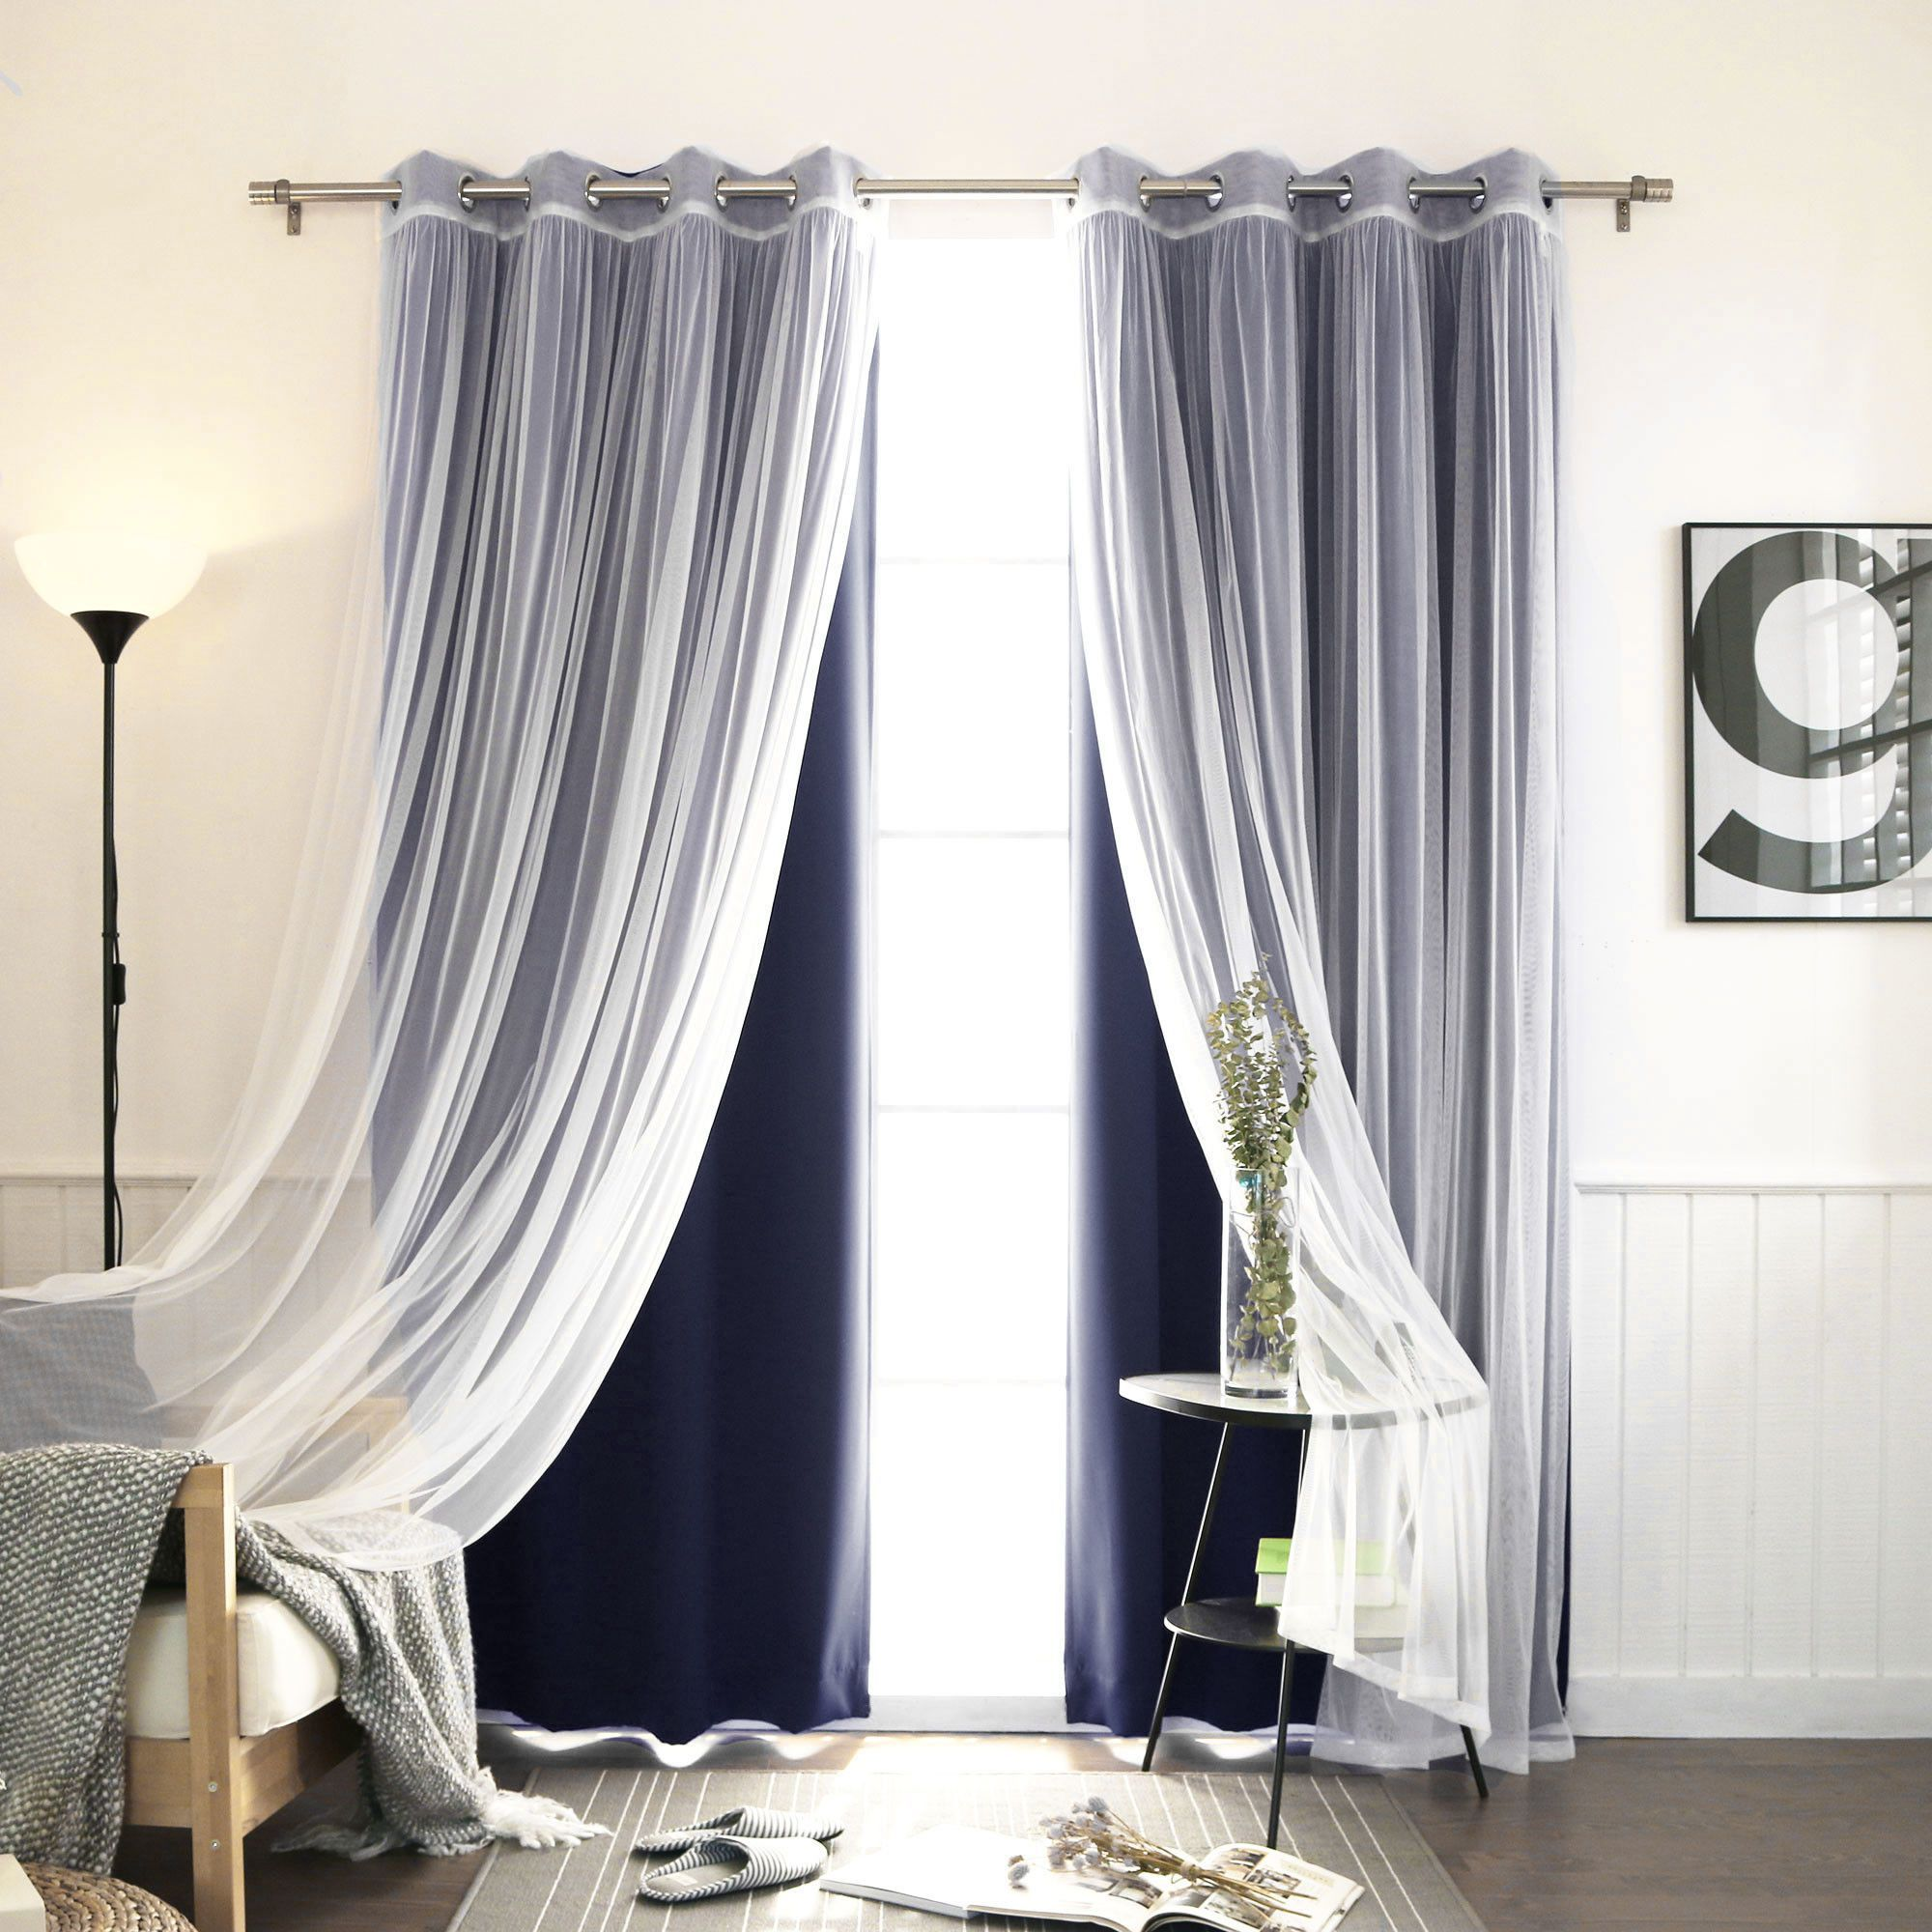 Best Home Fashion Inc Mix Match Curtain Panel Set Of 4 White Sheer Curtains Panel Curtains Curtains